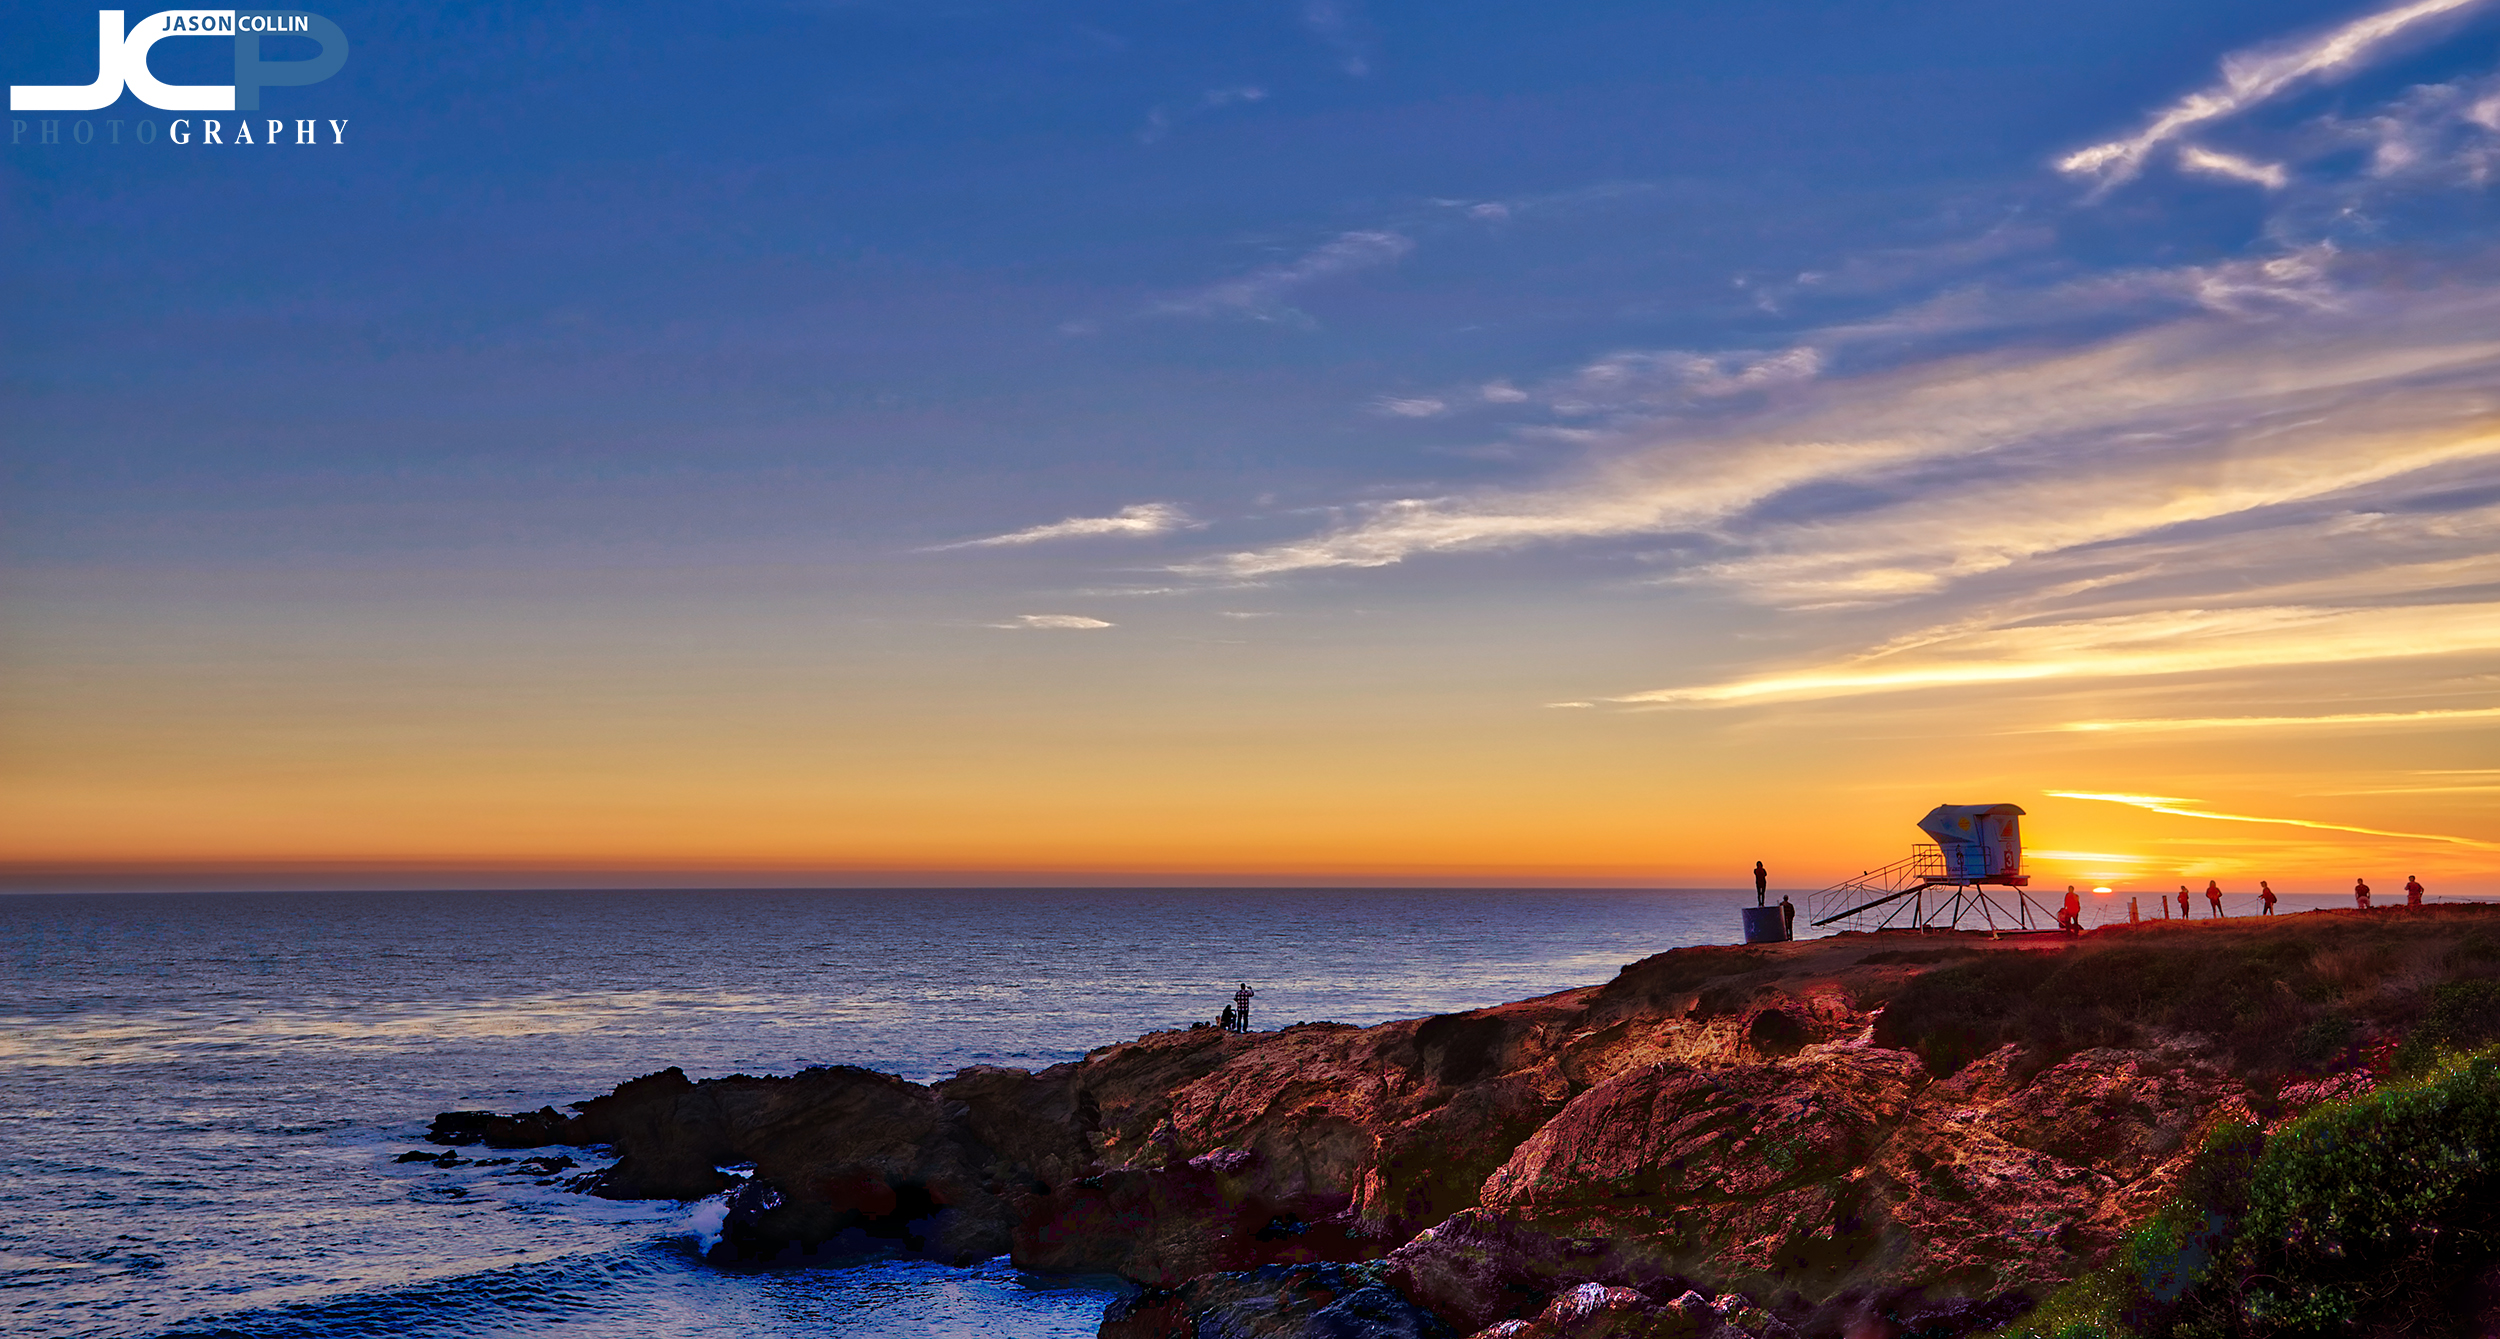 Malibu California iconic sunset view over the Pacific Ocean - get a fine are print for your home or office today!